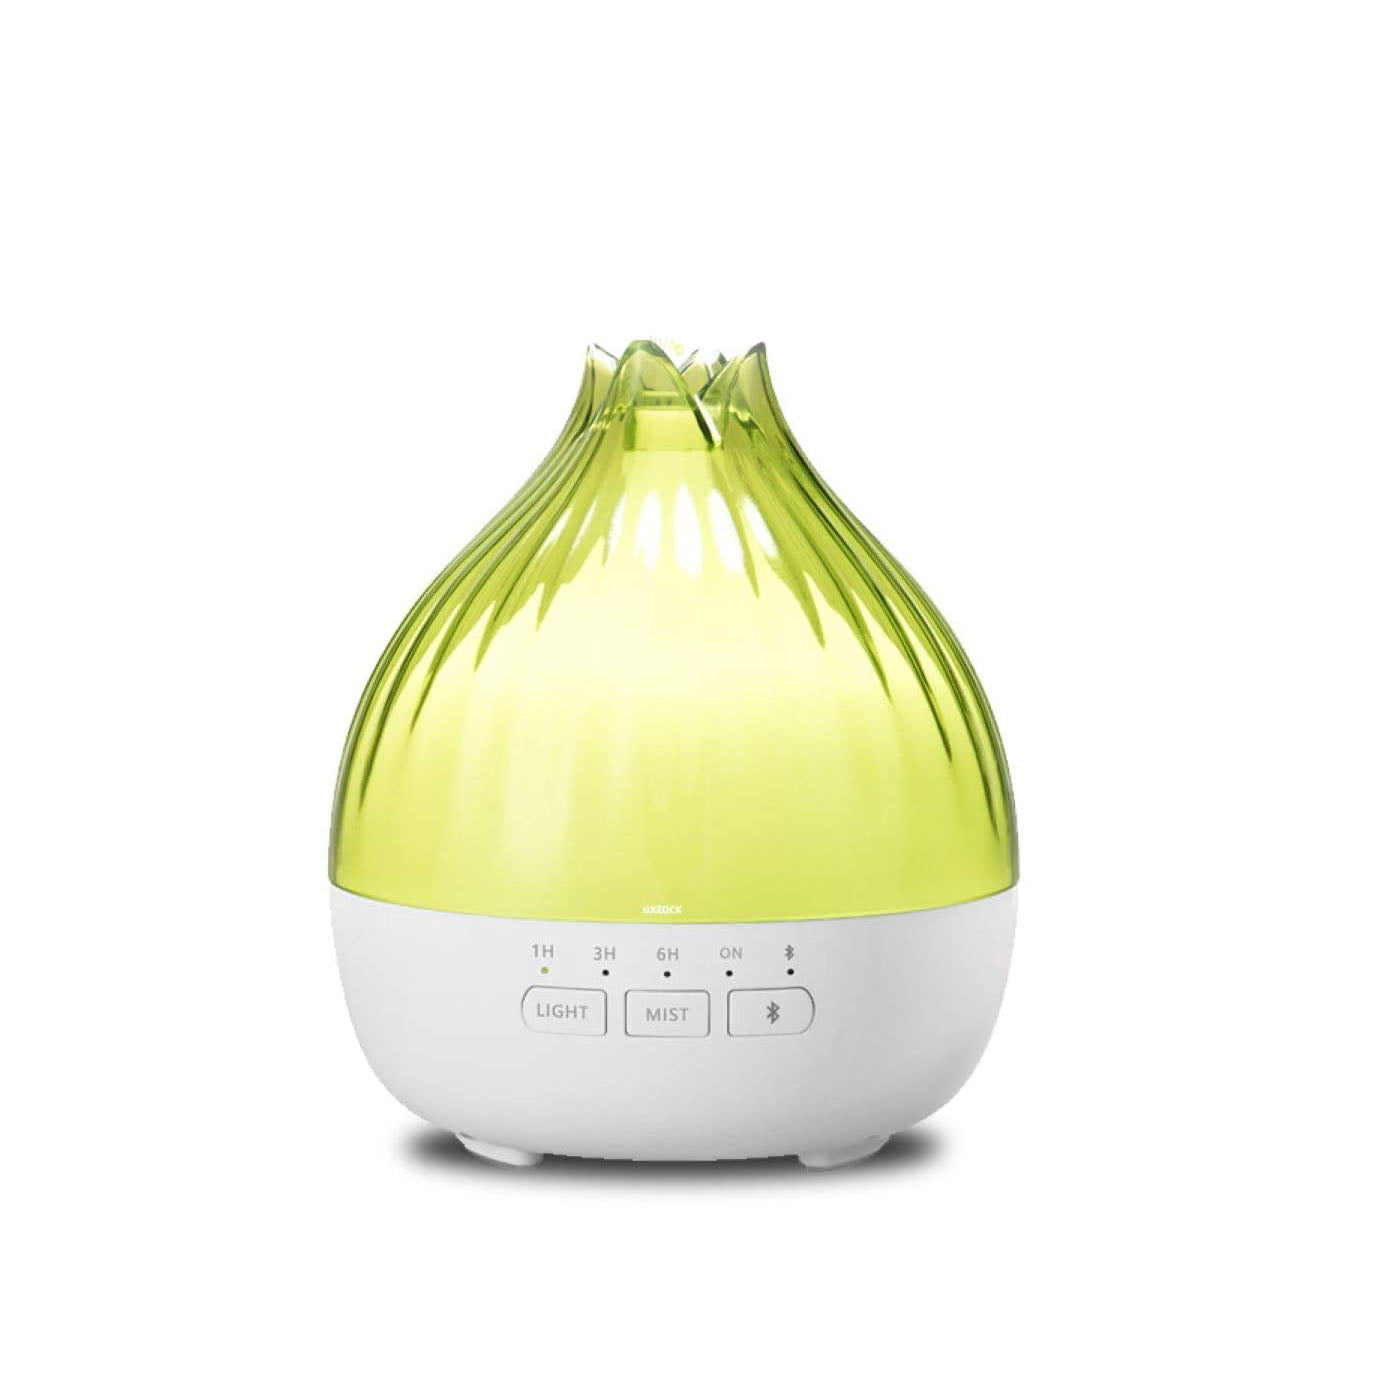 Humidificateur d'air <br> Diffuseur Saoul